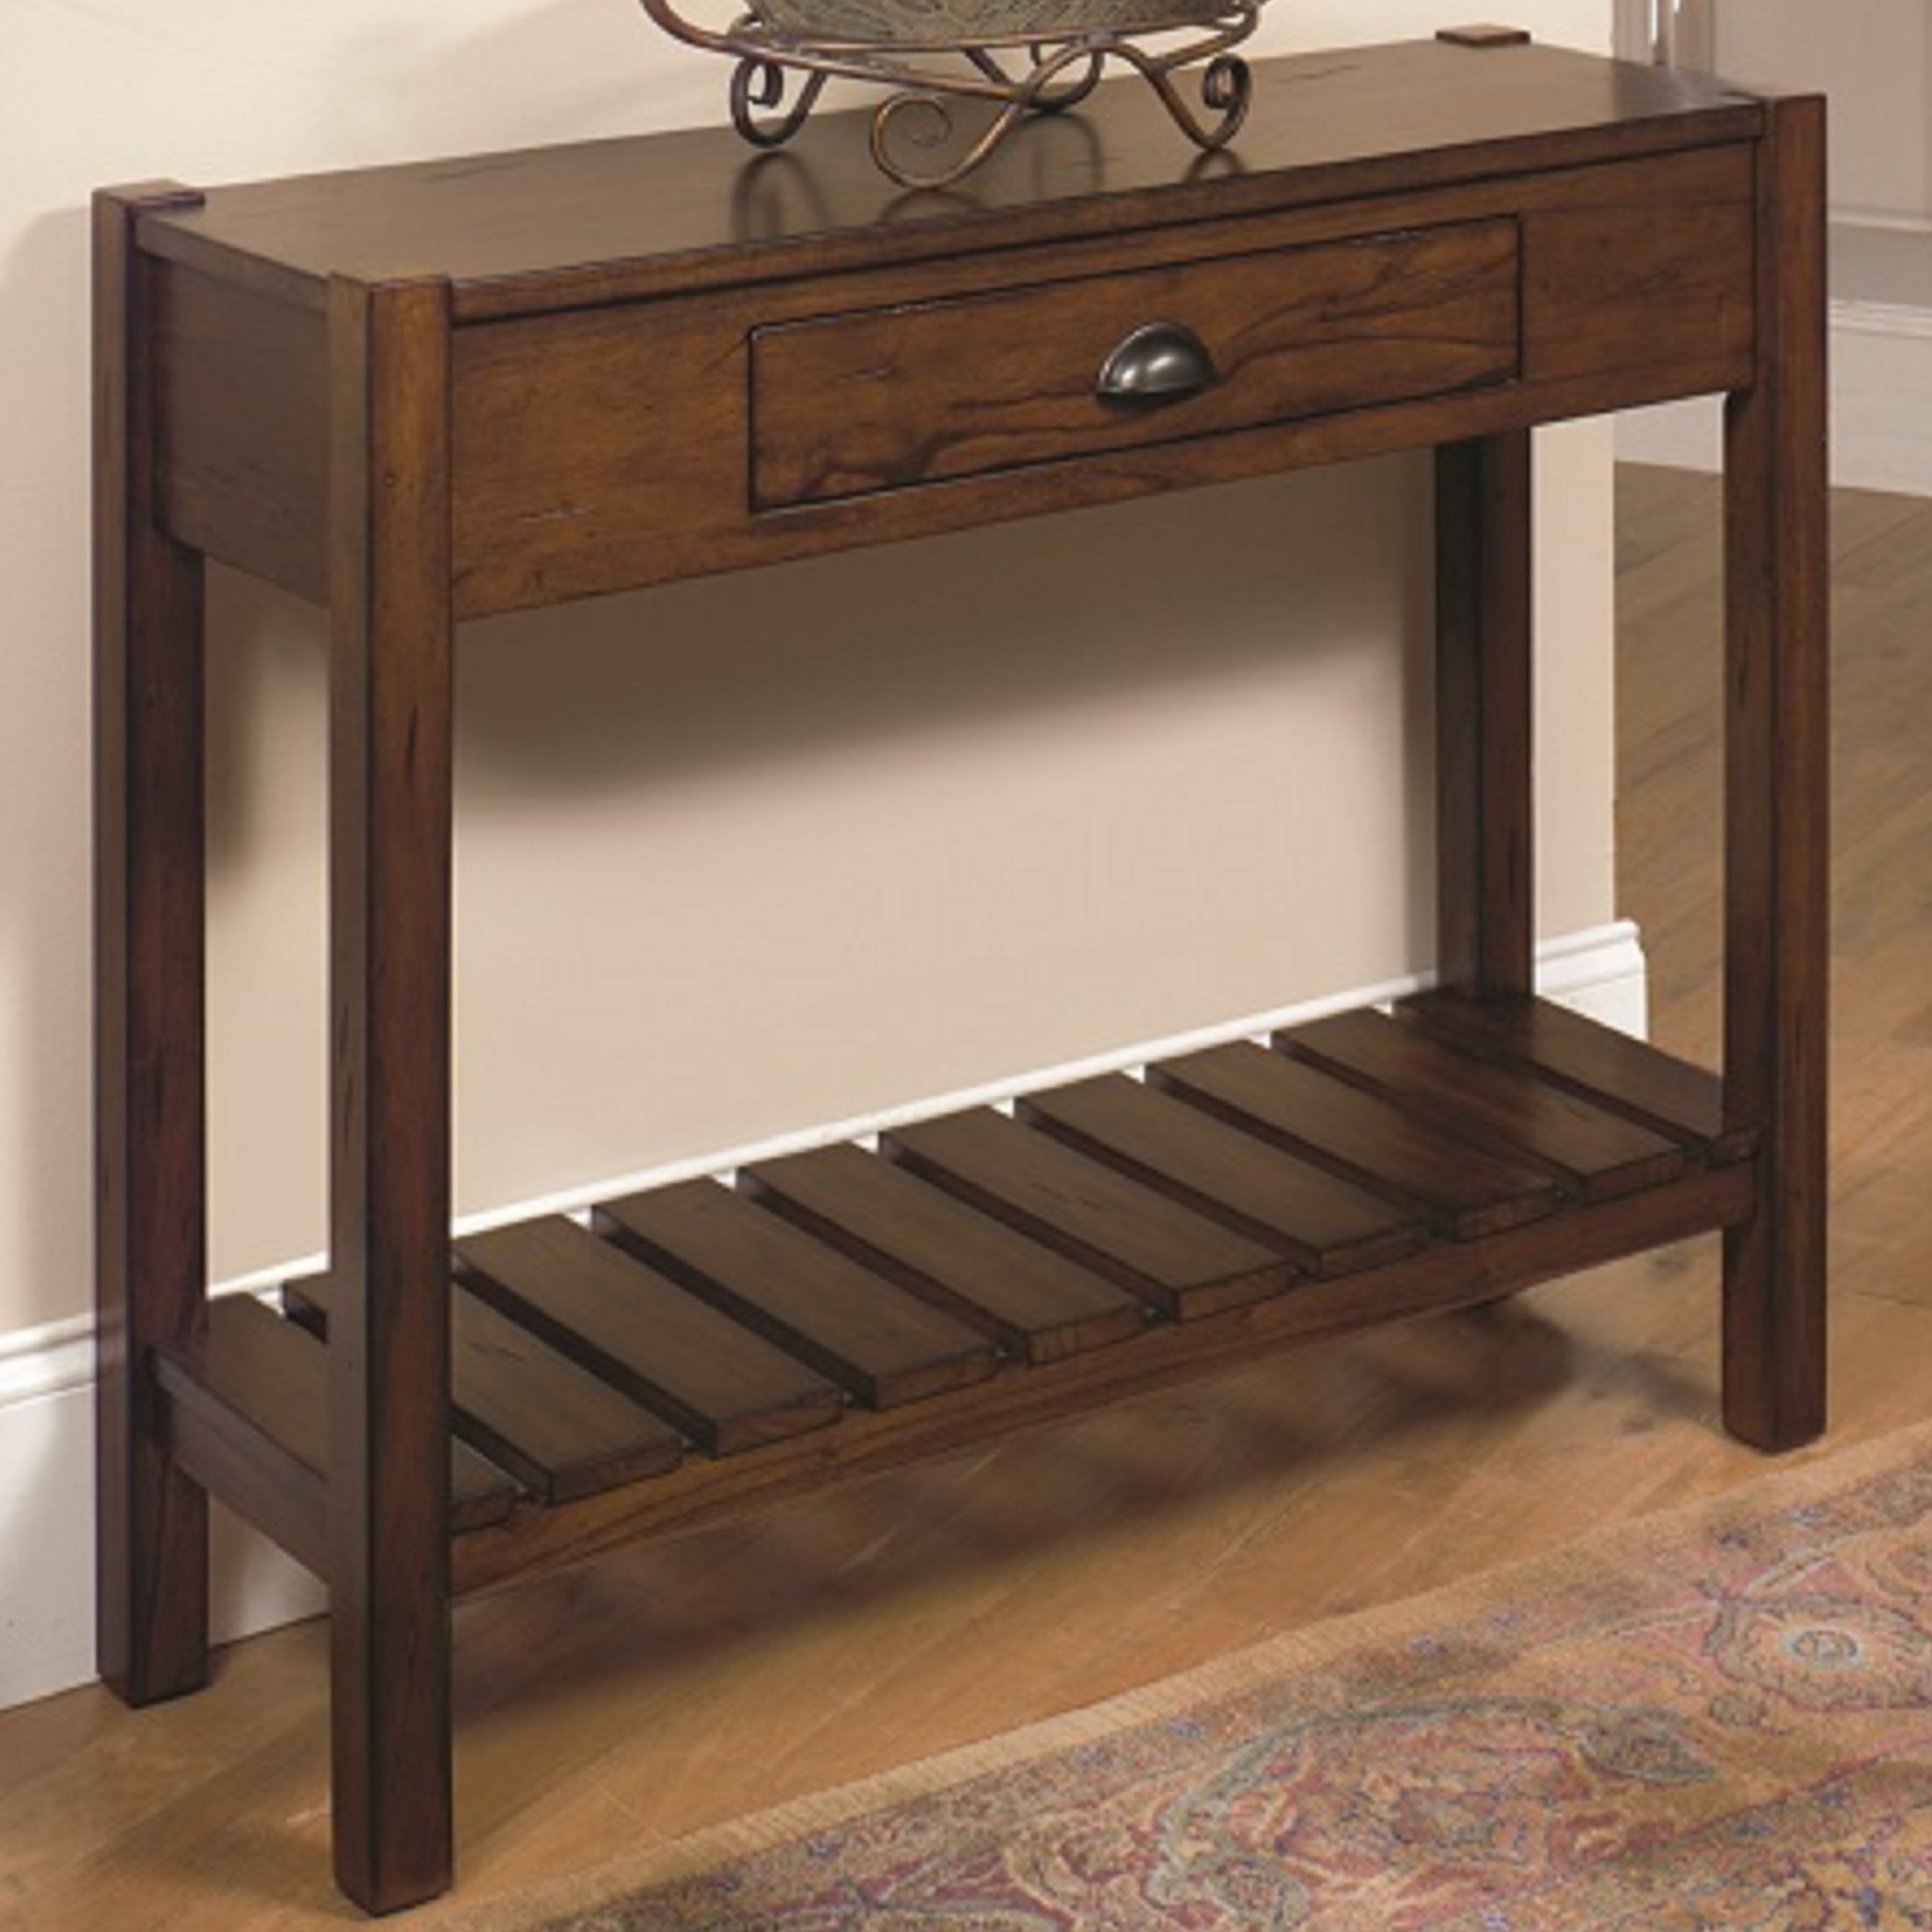 Small Corner Console Table | Wayfair Throughout Layered Wood Small Square Console Tables (View 16 of 20)